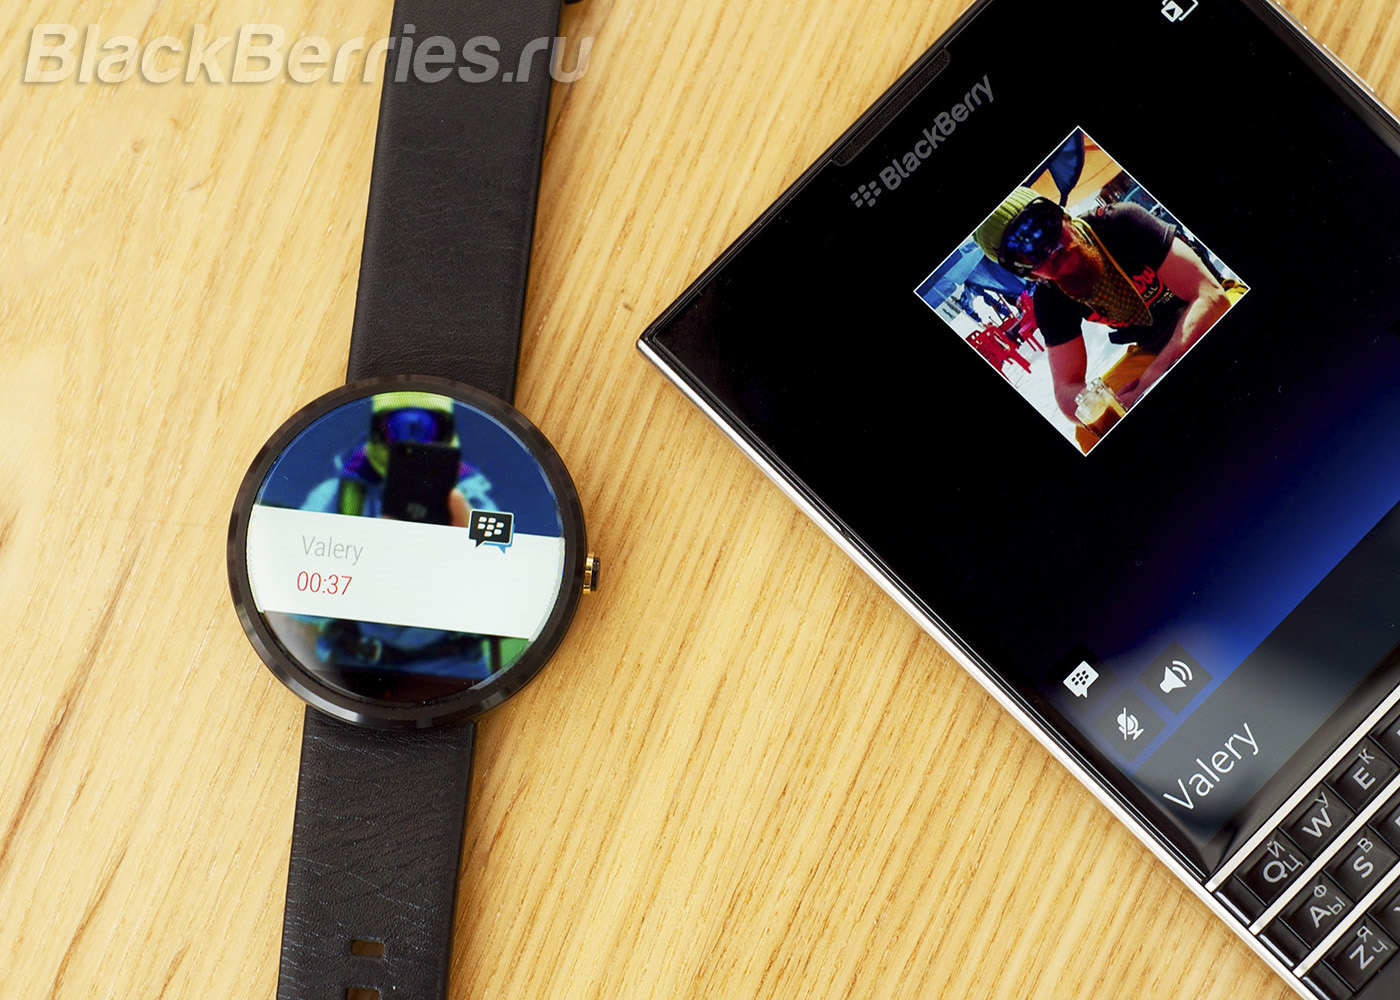 BlackBerry-BBM-Android-Wear-02